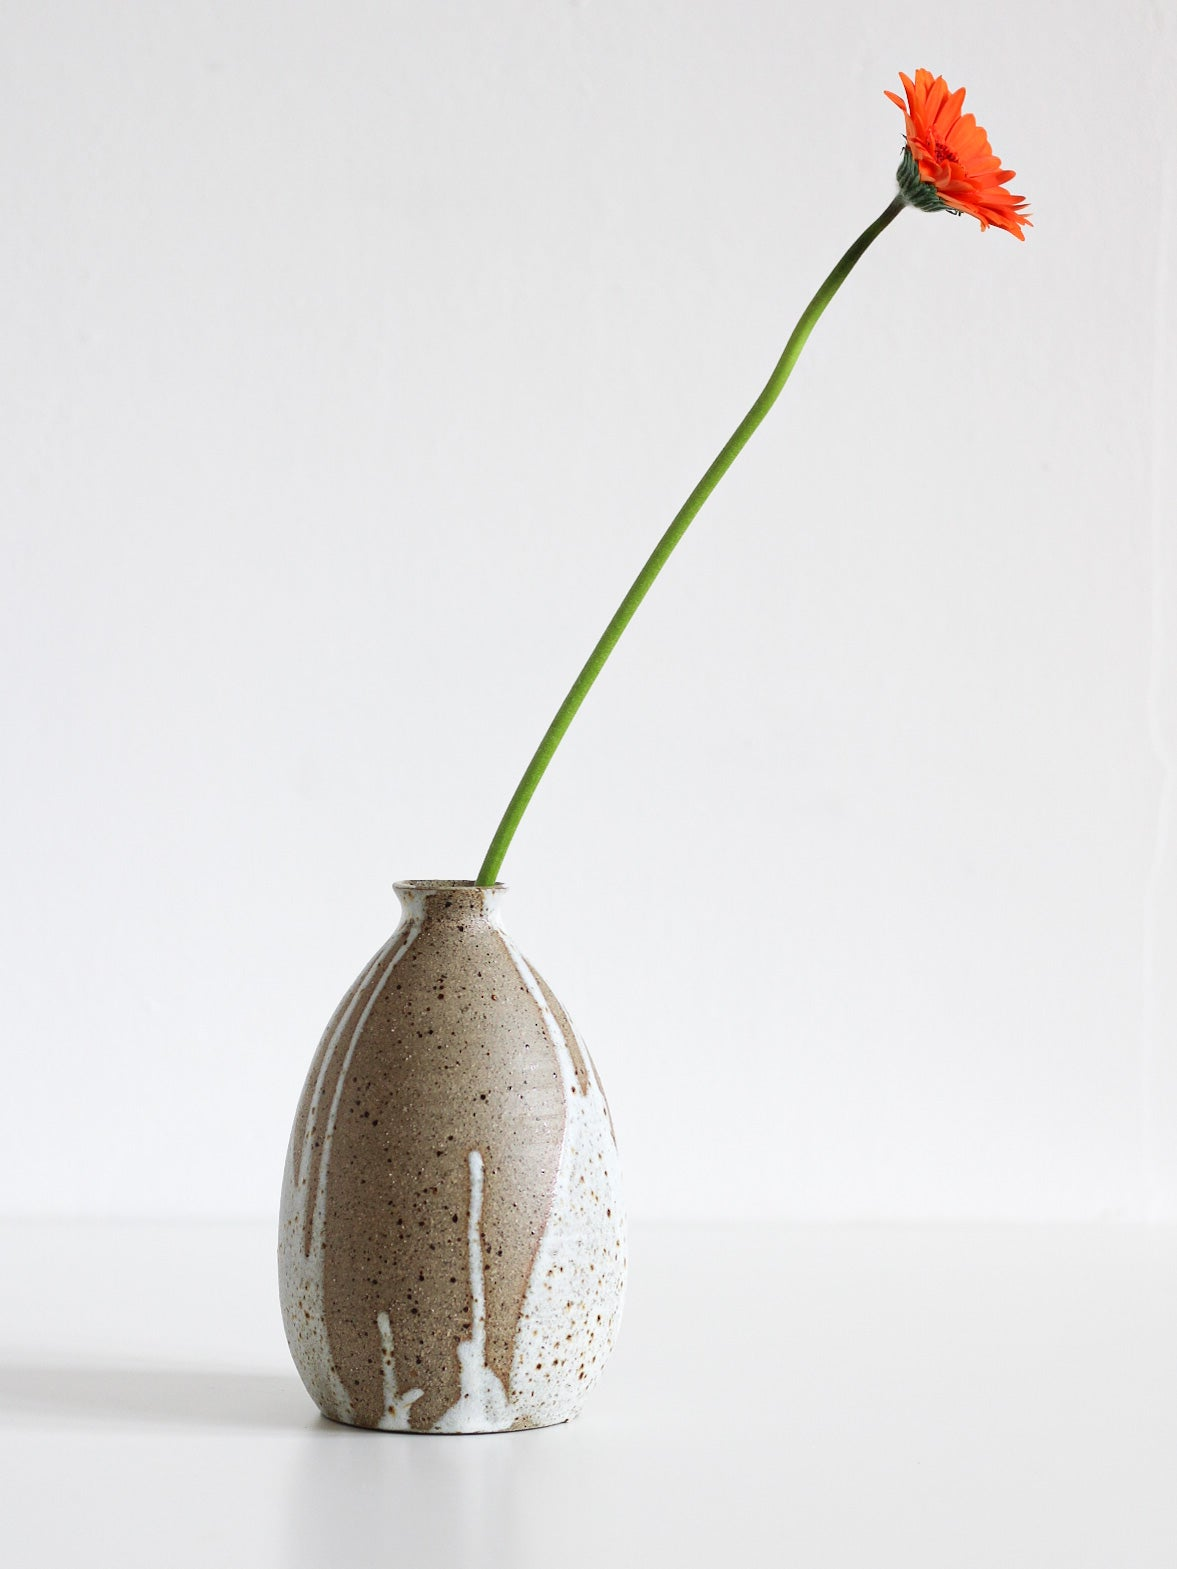 Image of tall vase